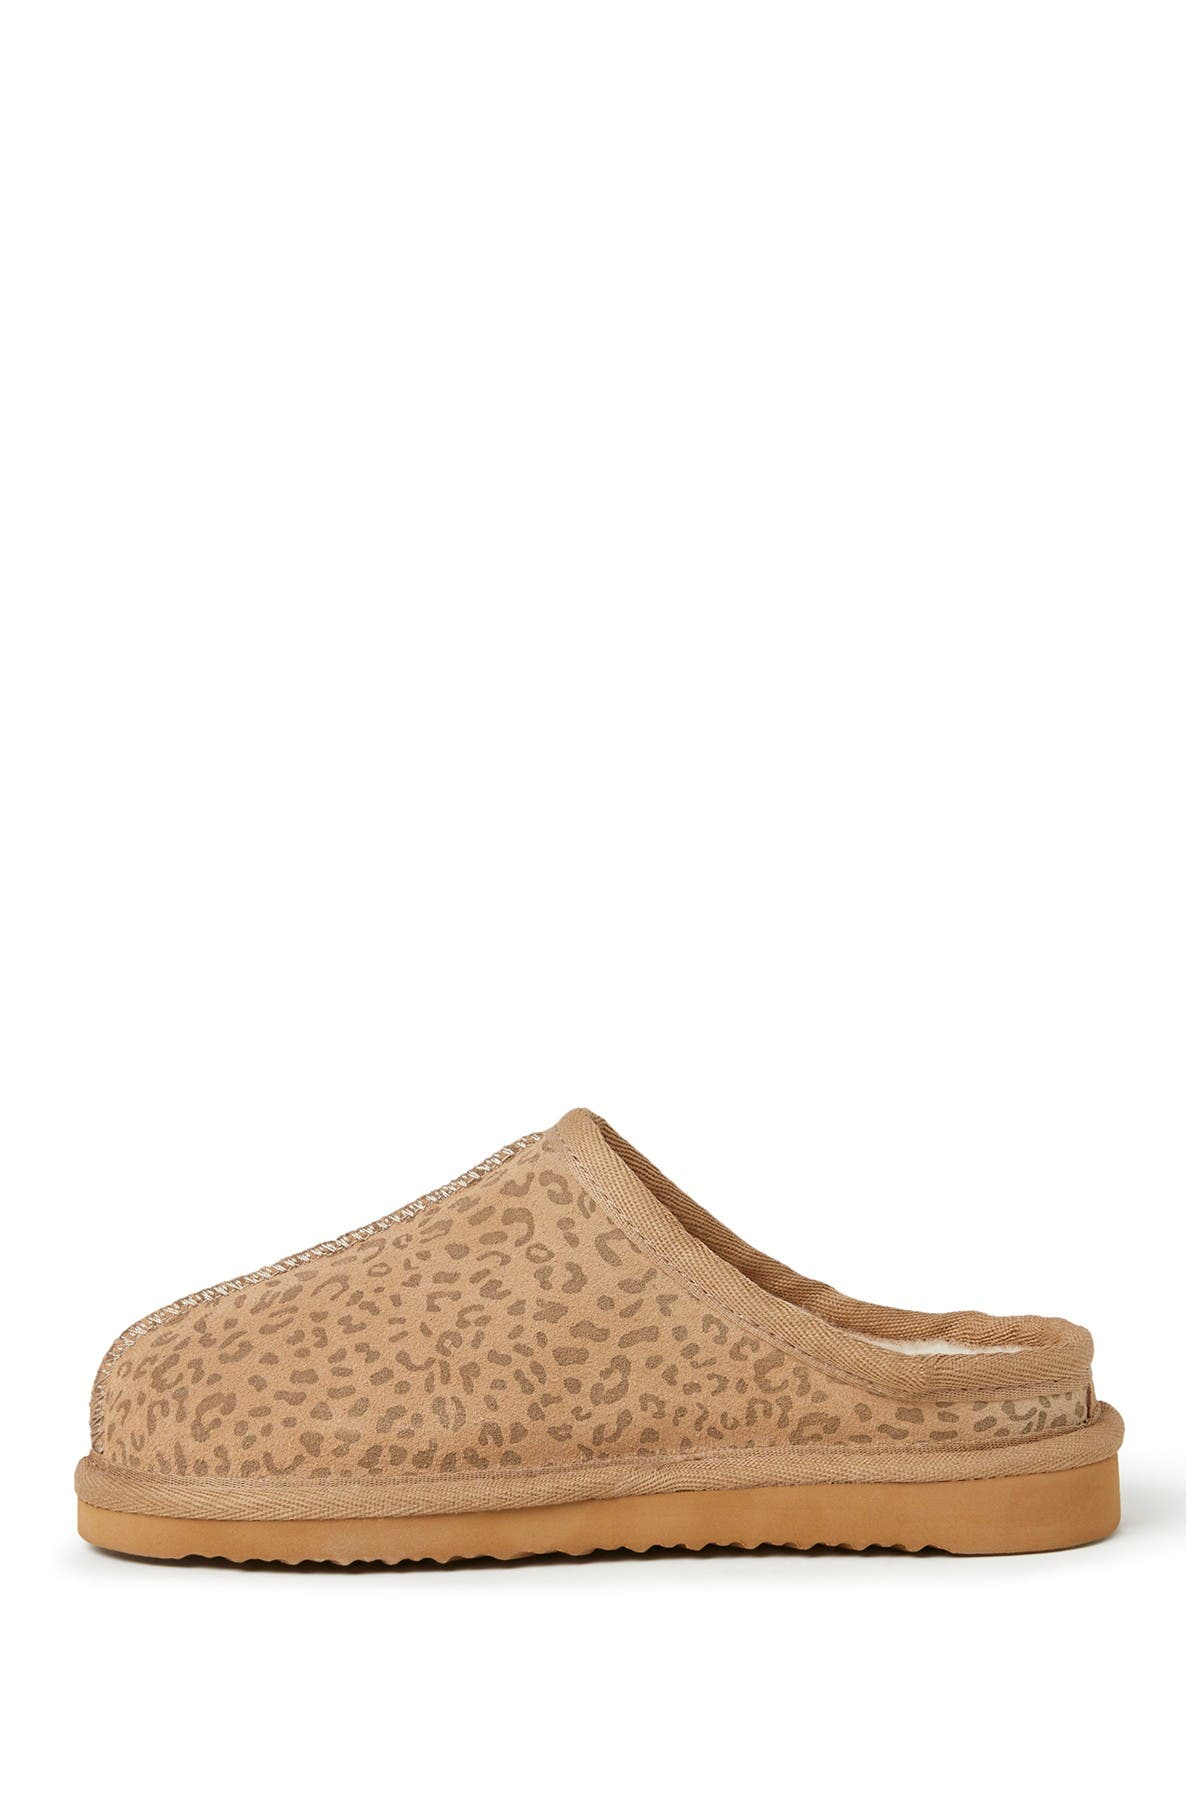 Image of Dearfoams Dempsey Genuine Shearling Lined Clog